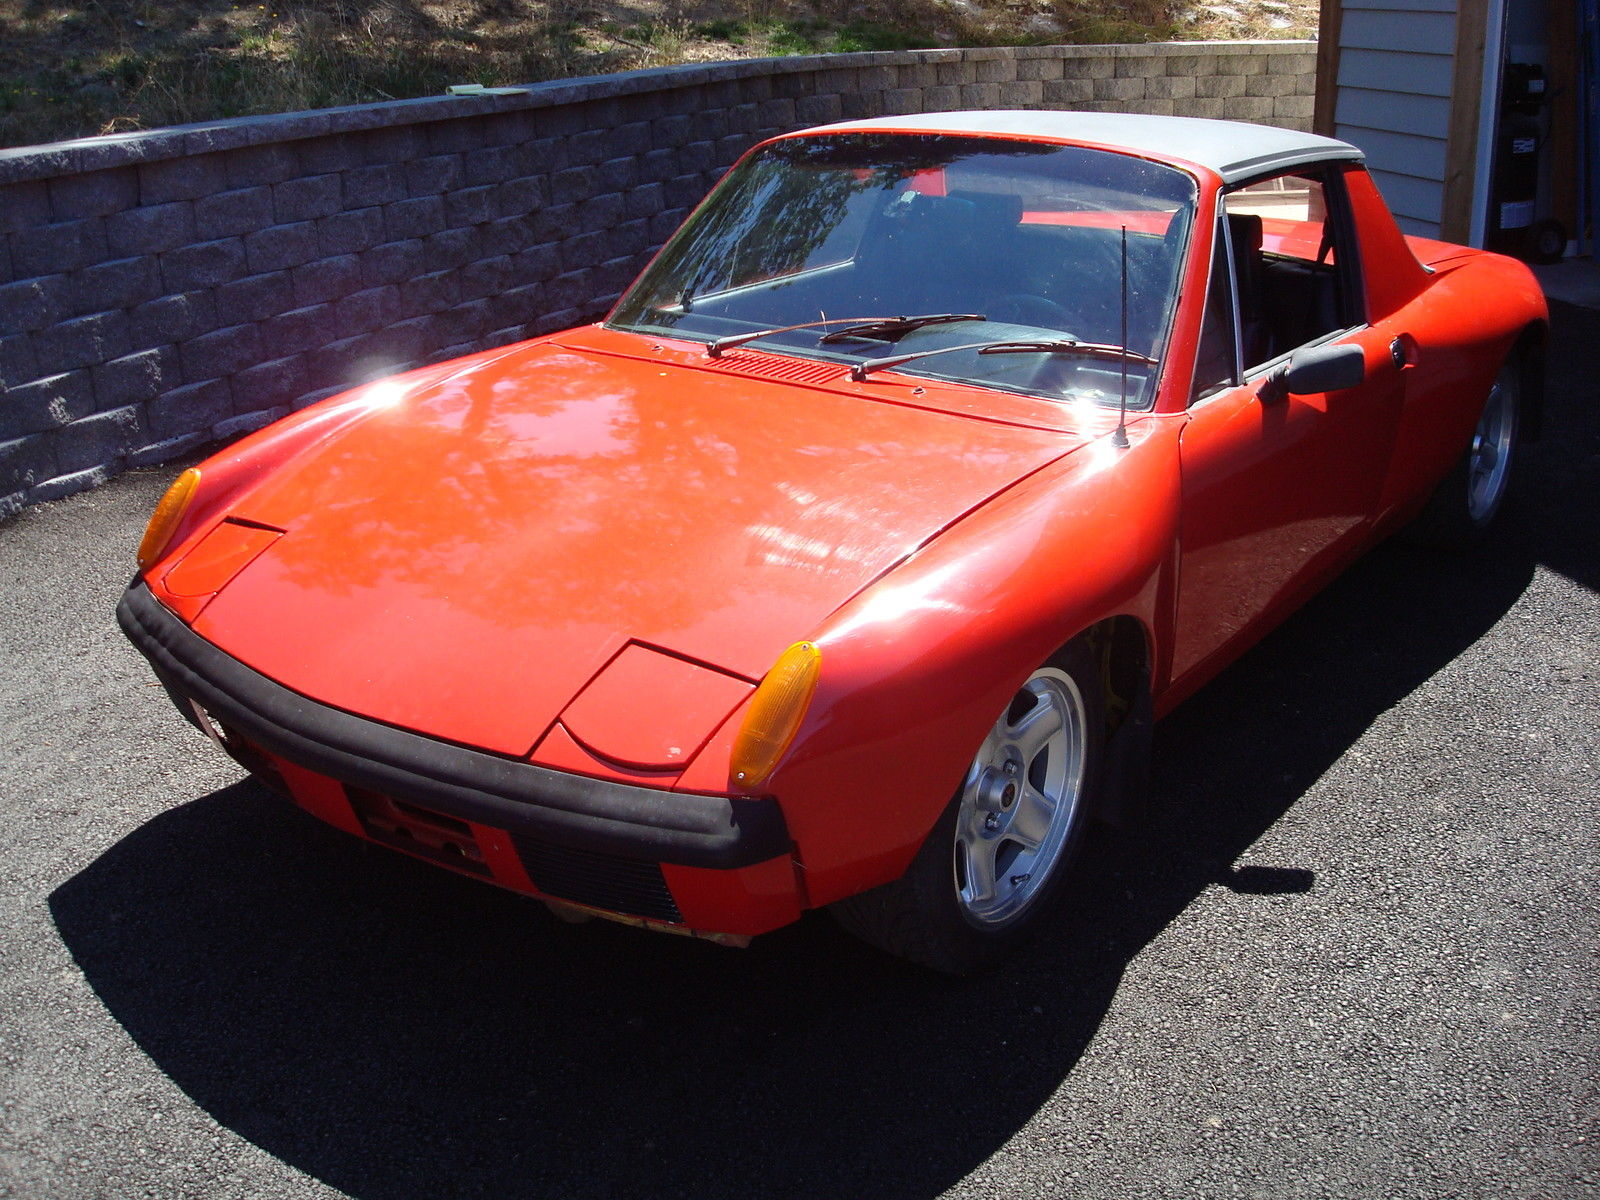 Water Cooled 1970 Porsche 914 V8 Rusty But Trusty